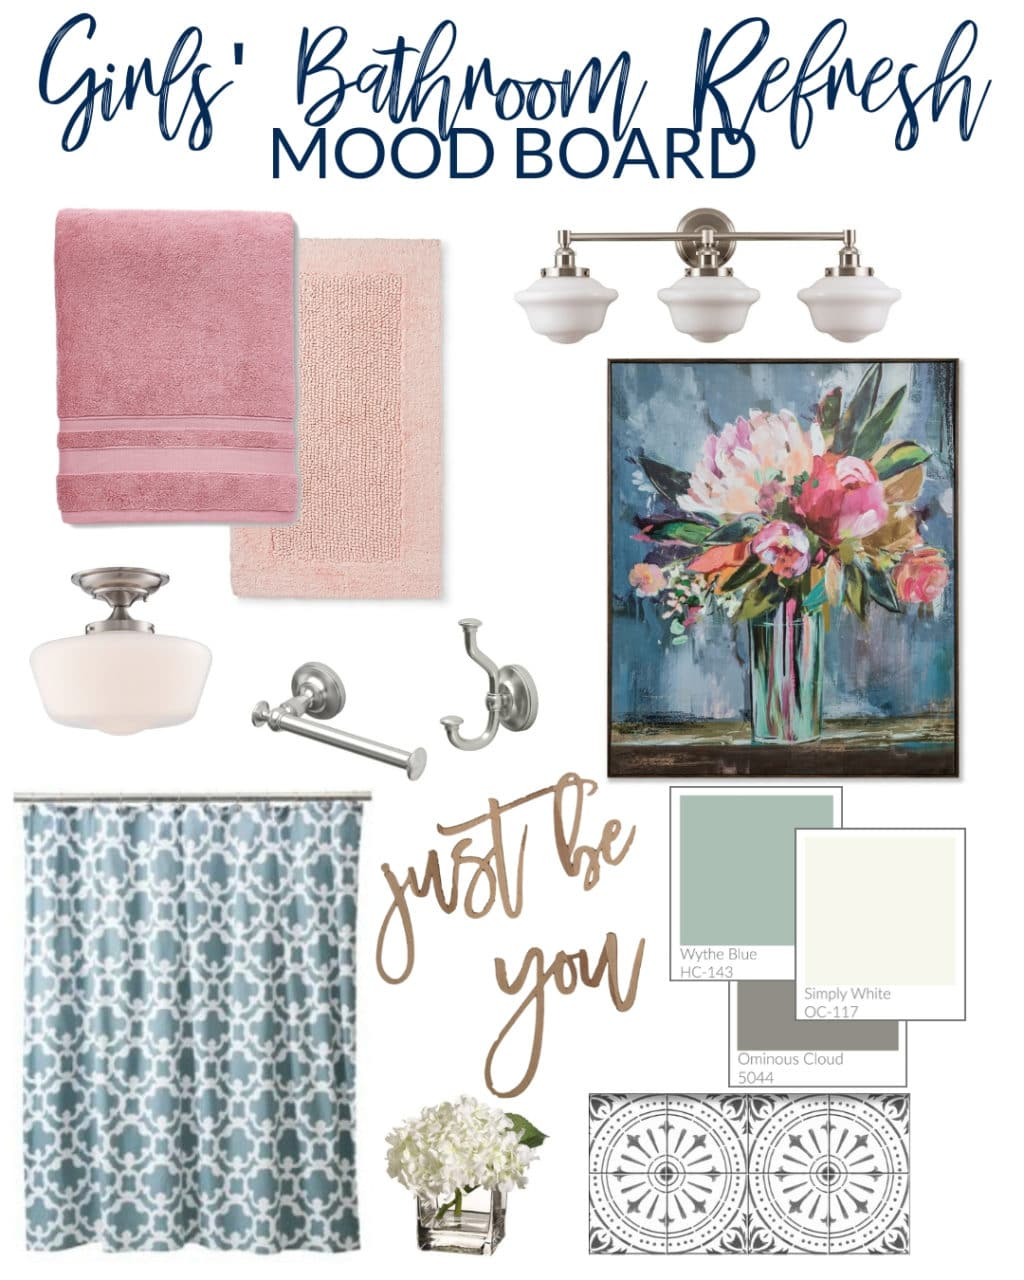 Girls' Bathroom Refresh Mood Board-2